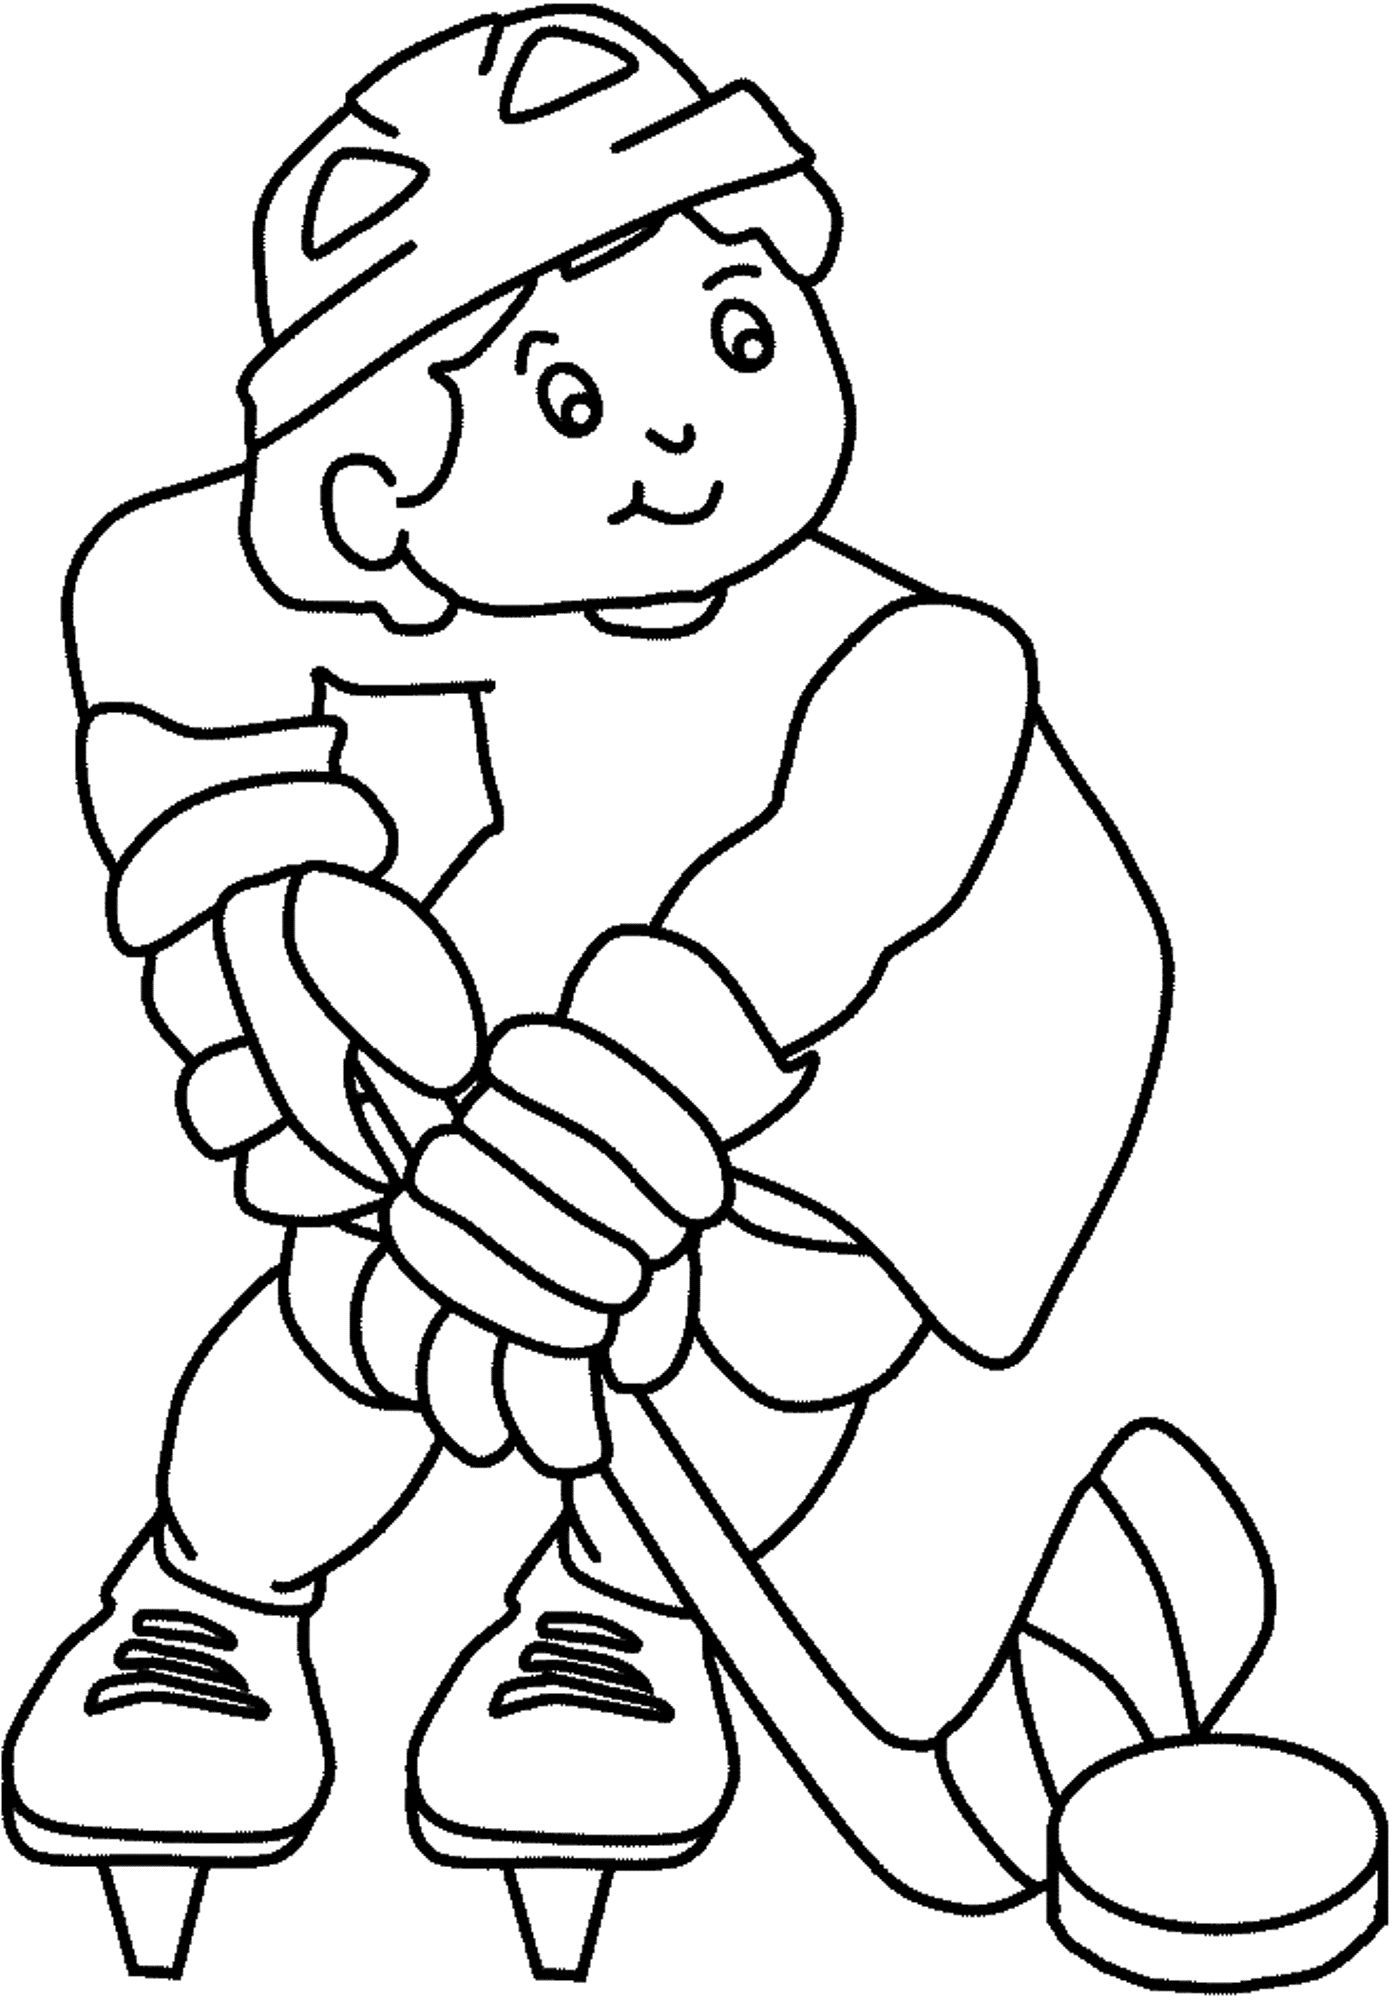 hockey players coloring pages hockey coloring pages for kids also extraordinary hockey hockey players coloring pages